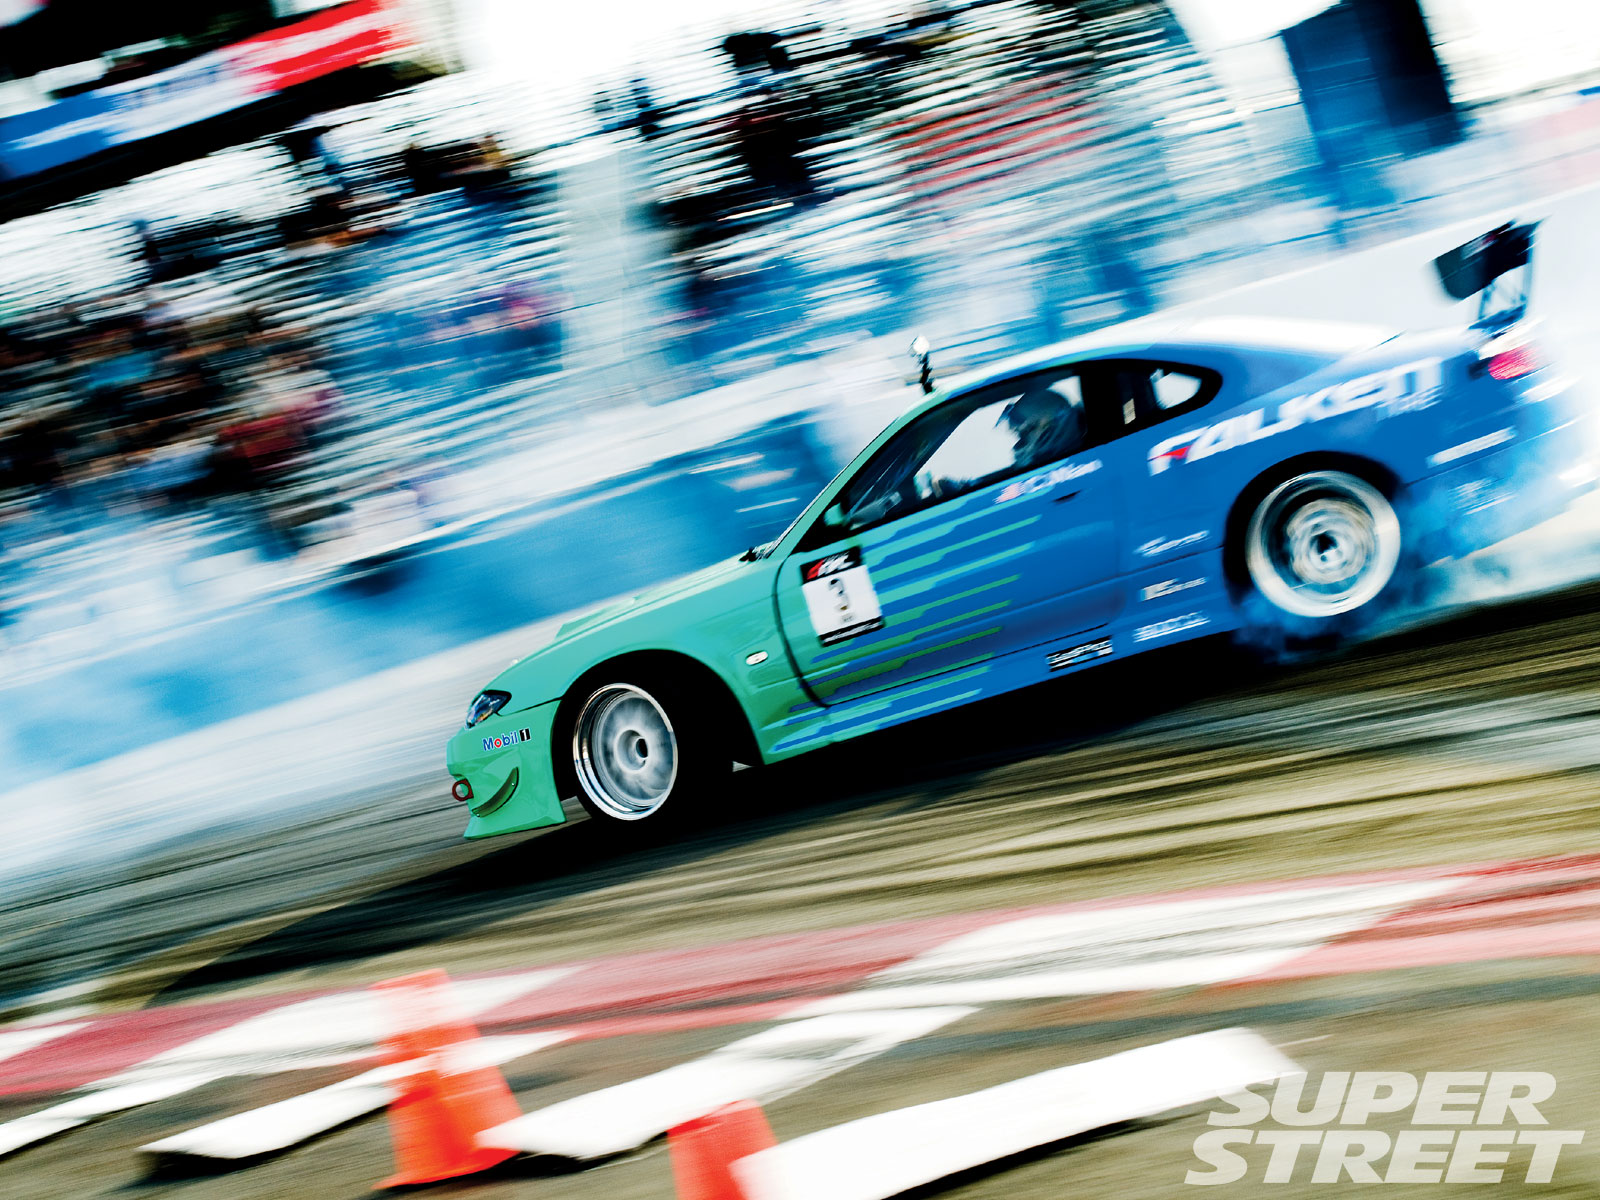 sstp_1006_02_o+nissan_240sx_drift_parts+racing_shot